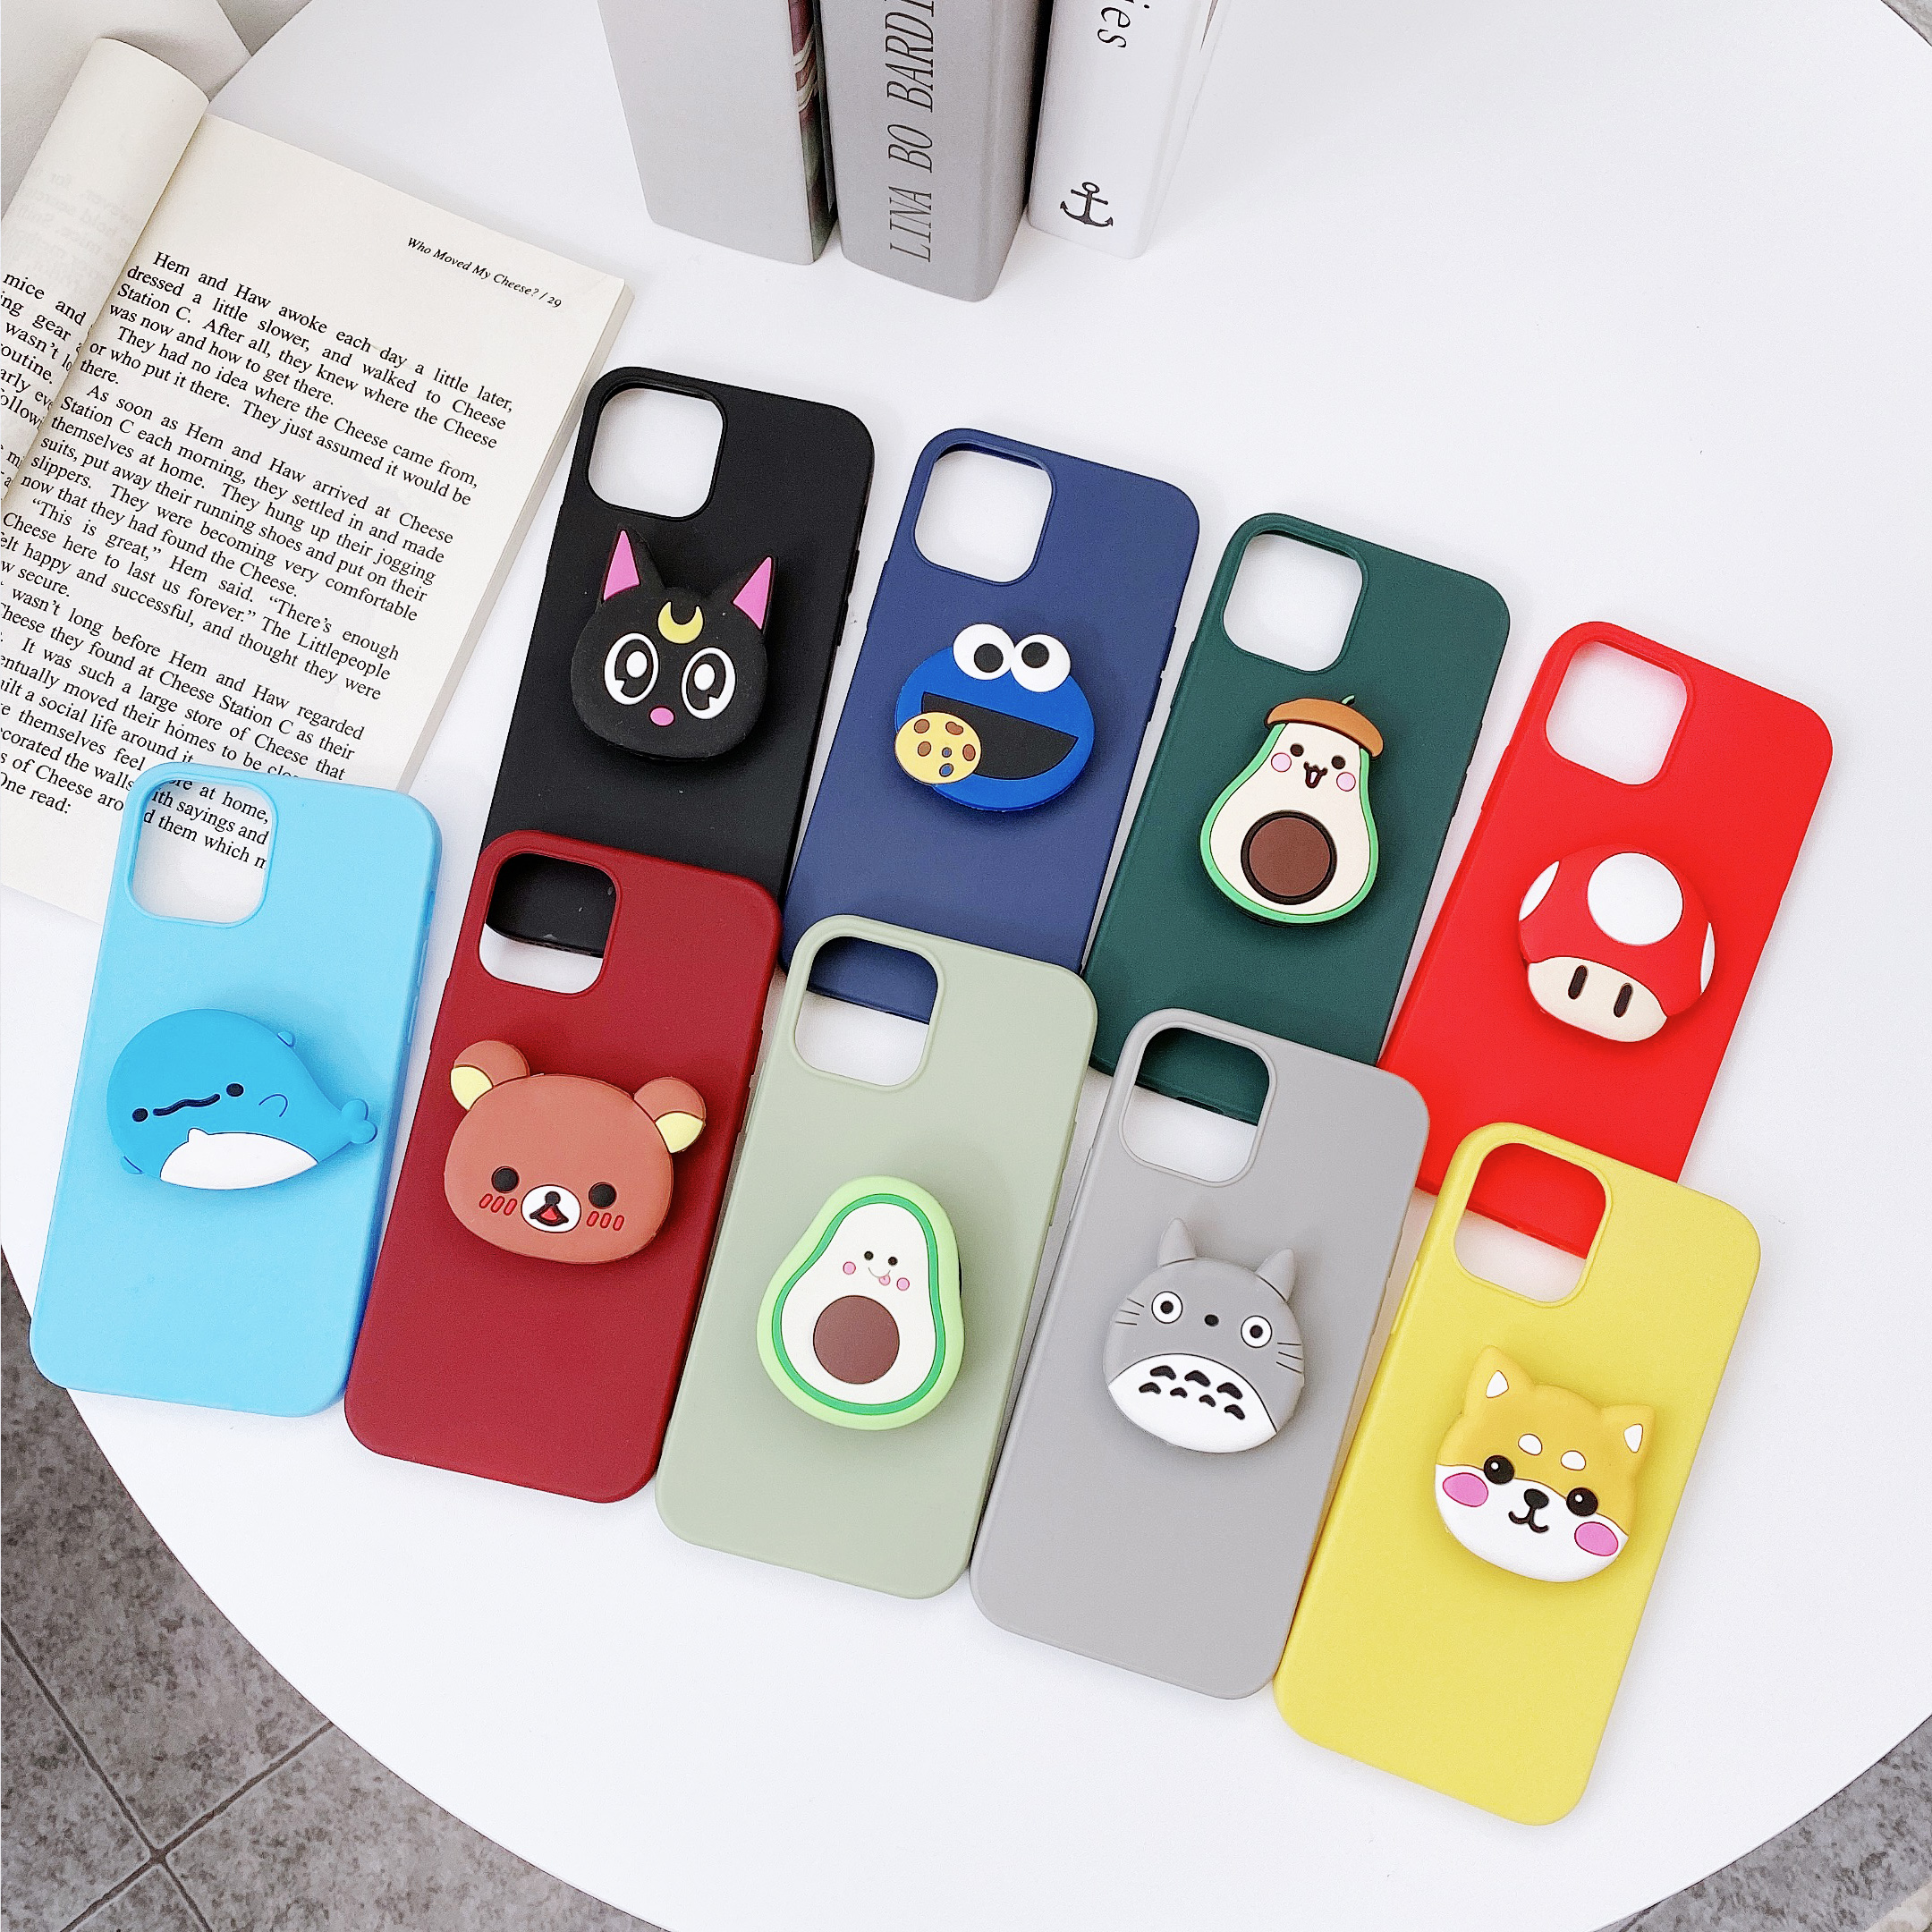 3D Silicone Cartoon Phone Holder Case For Iphone 12 Mini 11 Pro Max For Iphone X XS XR Max 6 7 8 Plus 6S 5S SE 2020 Stand Cover